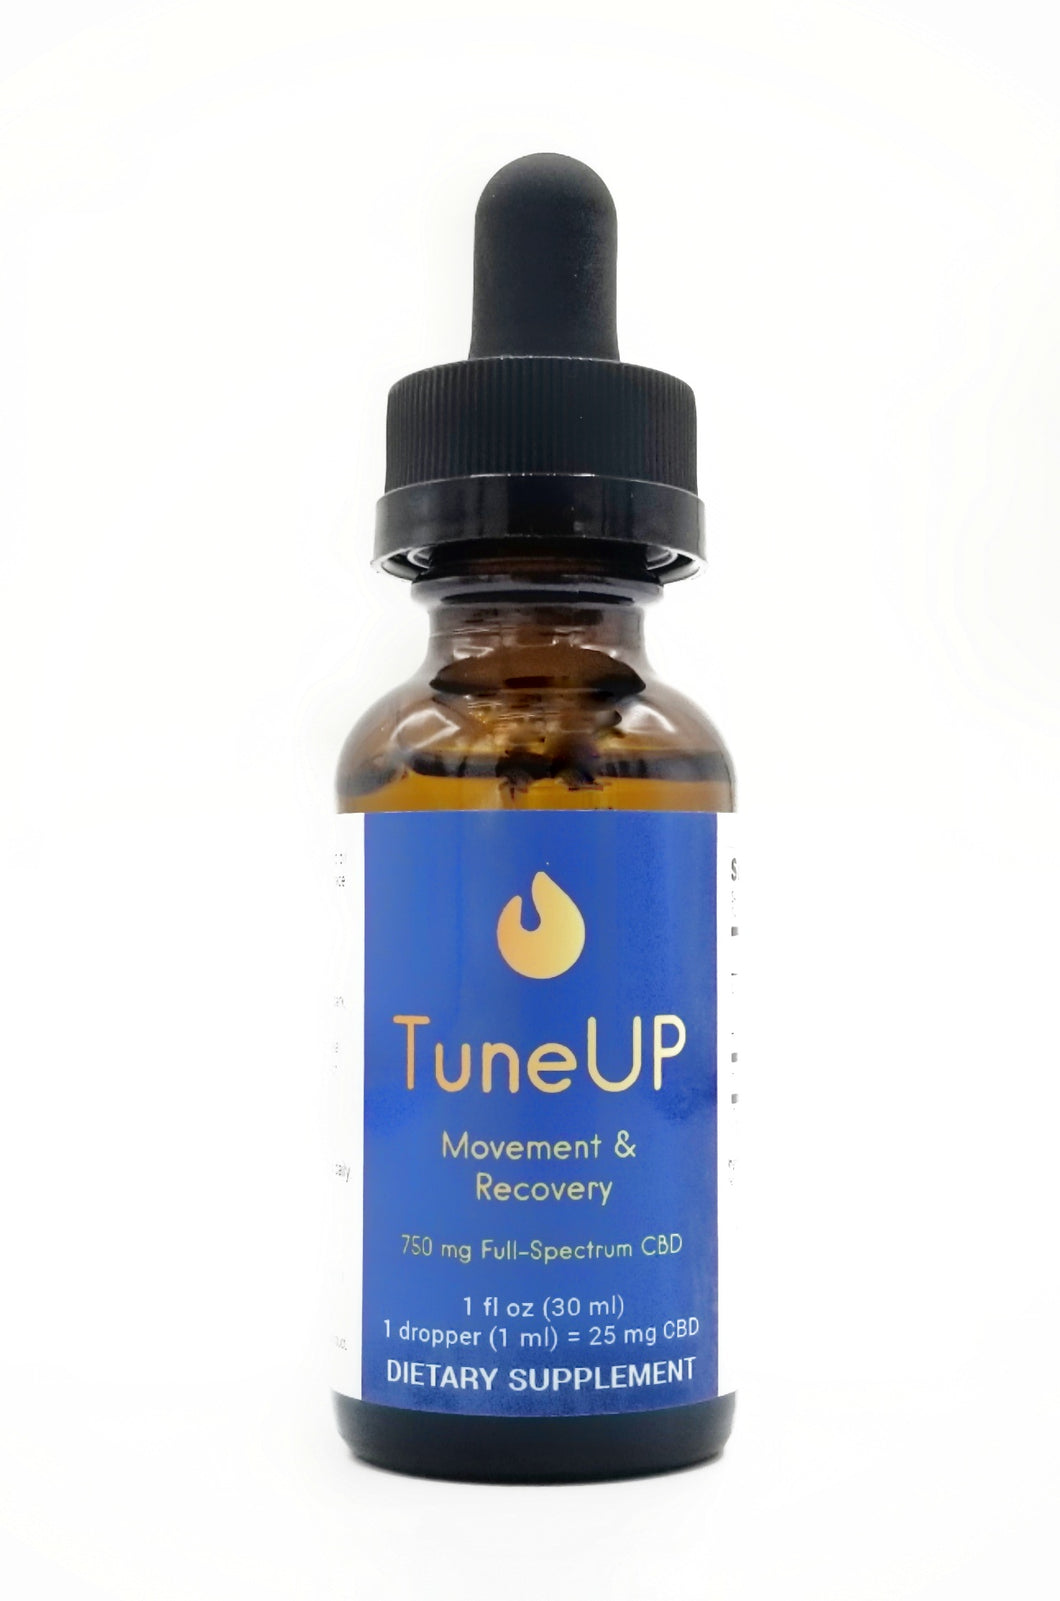 TuneUP 750 mg Full-Spectrum